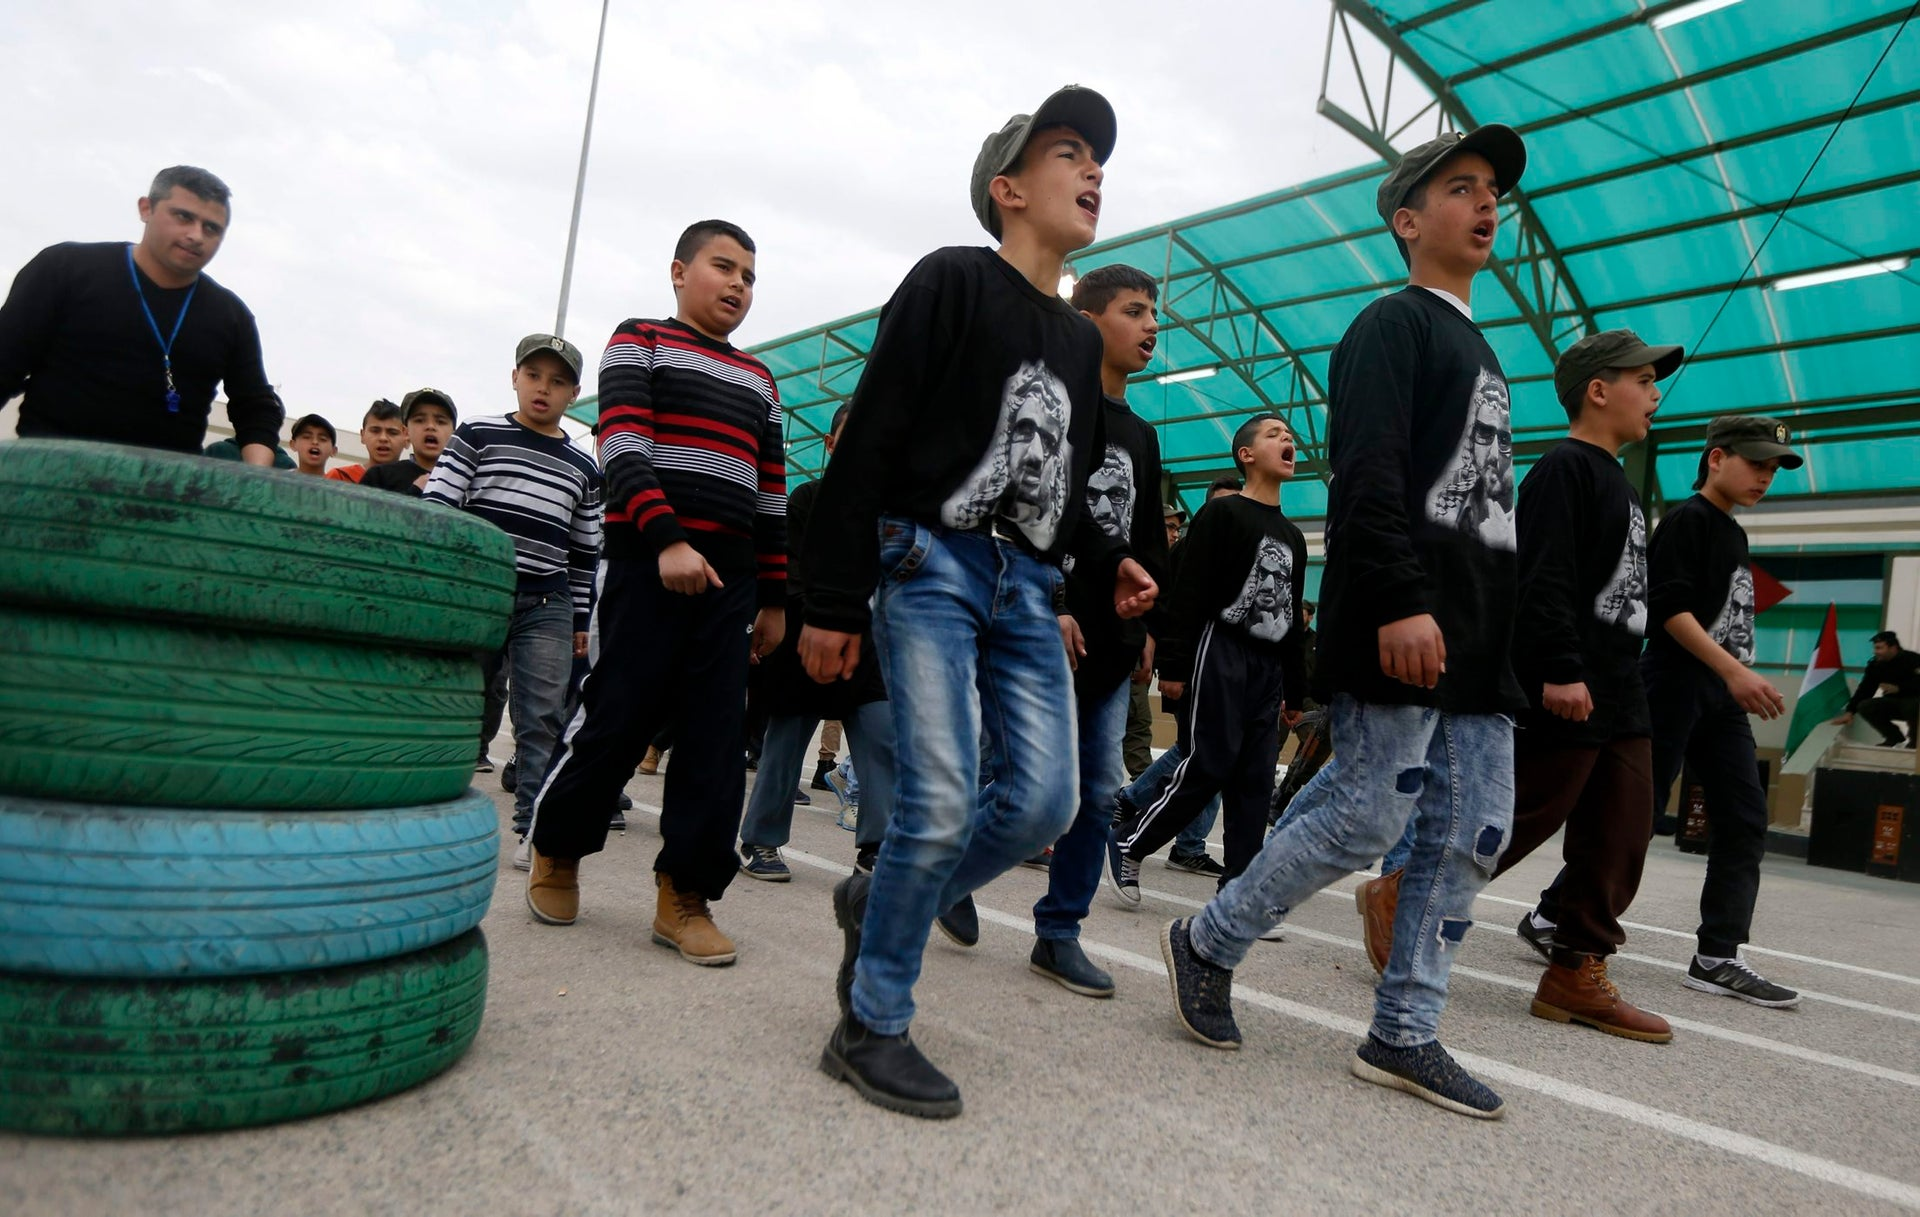 Palestinian take part in a training session at a youth camp with Palestinian security forces, in the West Bank city of Jericho, Wednesday, Jan. 25, 2017. The participants spend 3 days in the military camp.